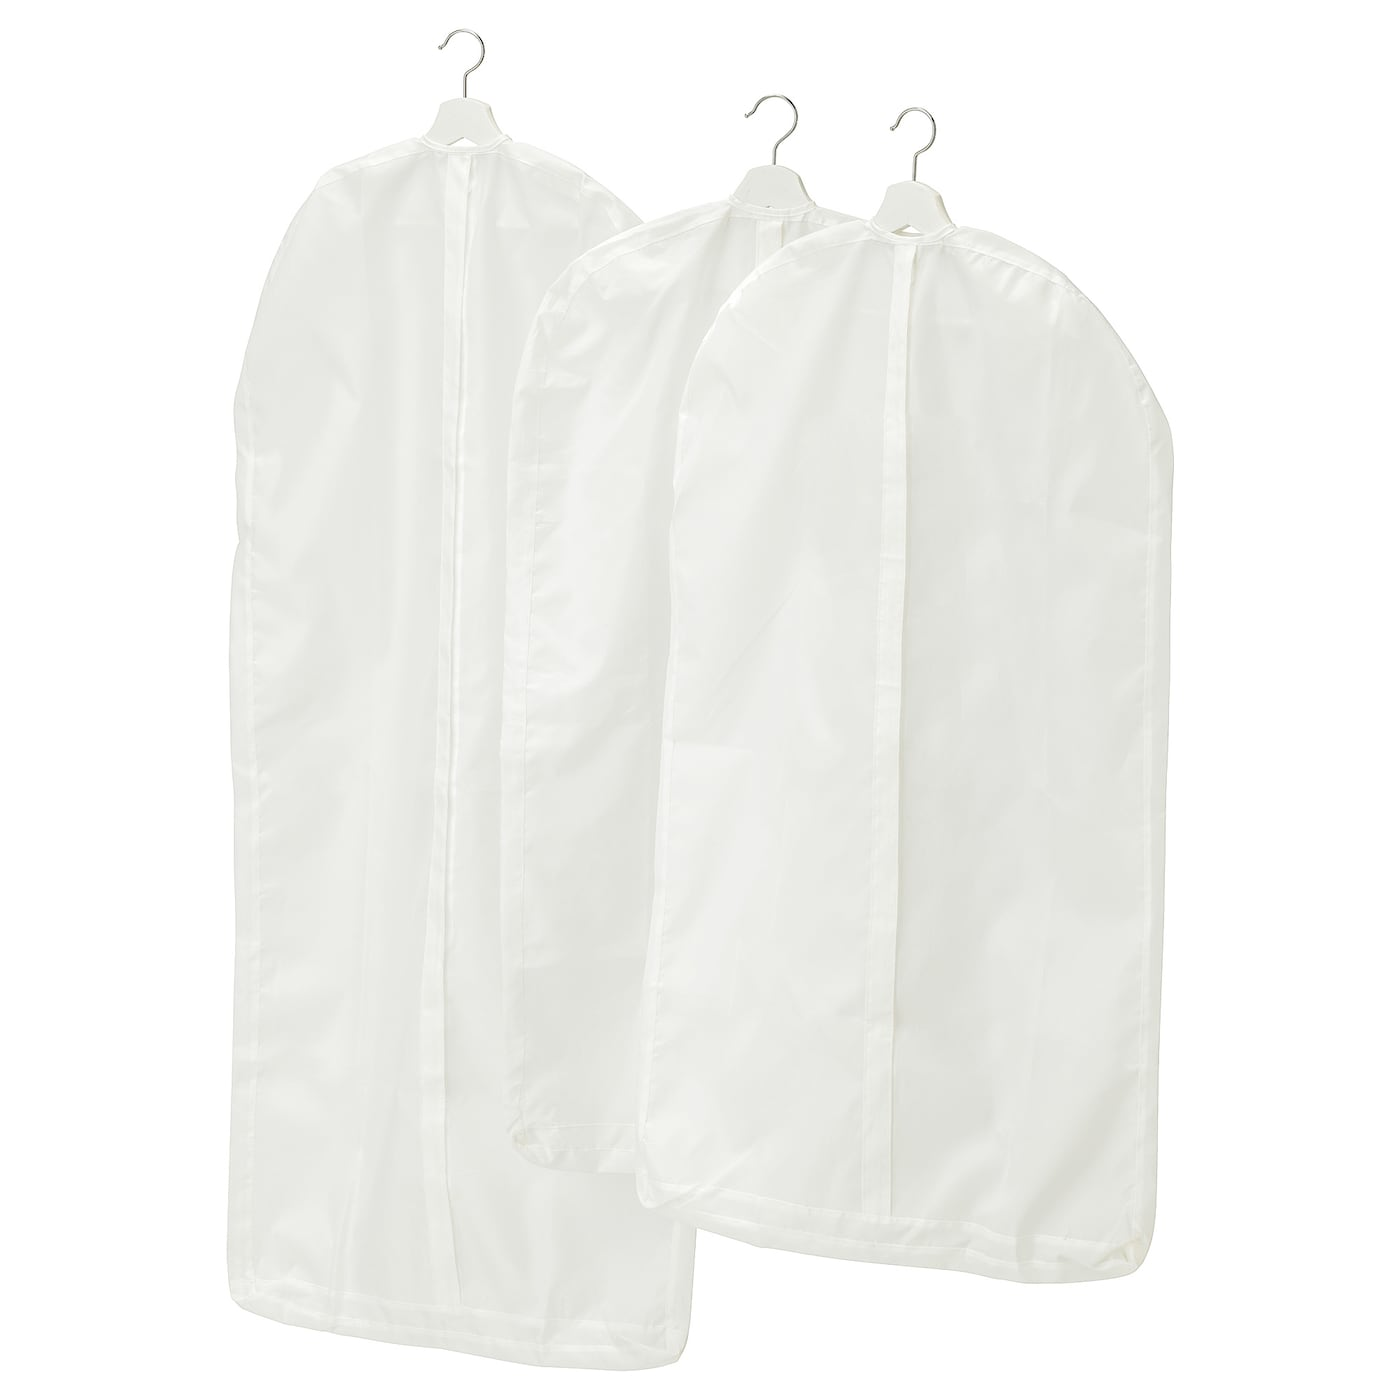 IKEA SKUBB clothes cover, set of 3 Protects your clothes from dust.